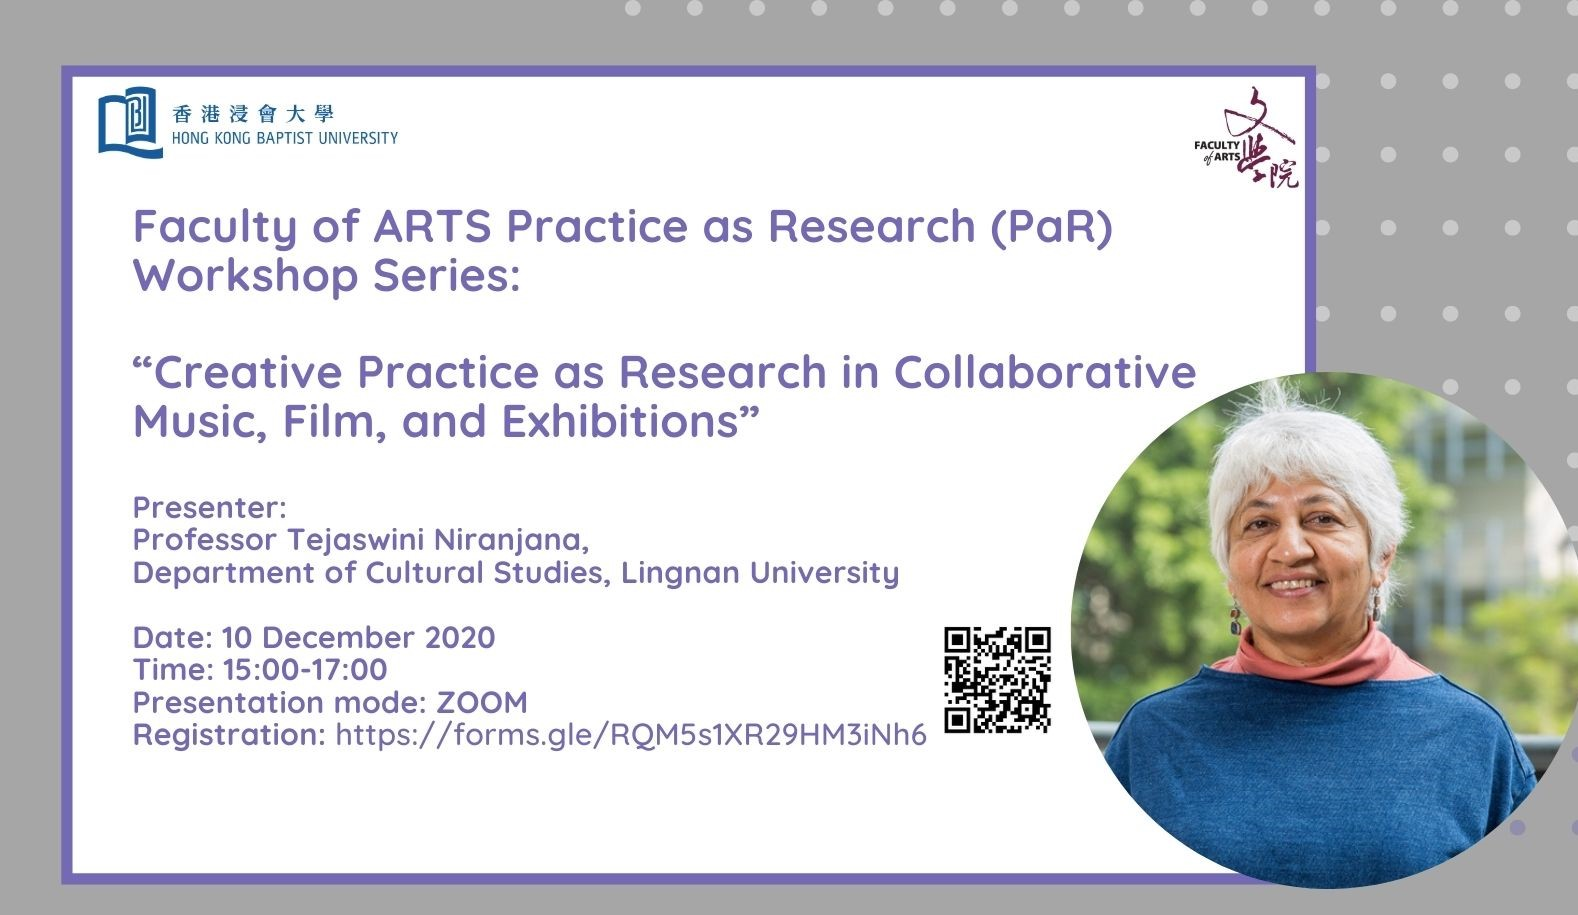 "The Faculty of Arts proudly presents its Practice as Research (PaR) Workshop Series event ""Creative Practice as Research in Collaborative Music, Film, and Exhibitions"", a Zoom talk by Prof. Tejaswini Niranjana"